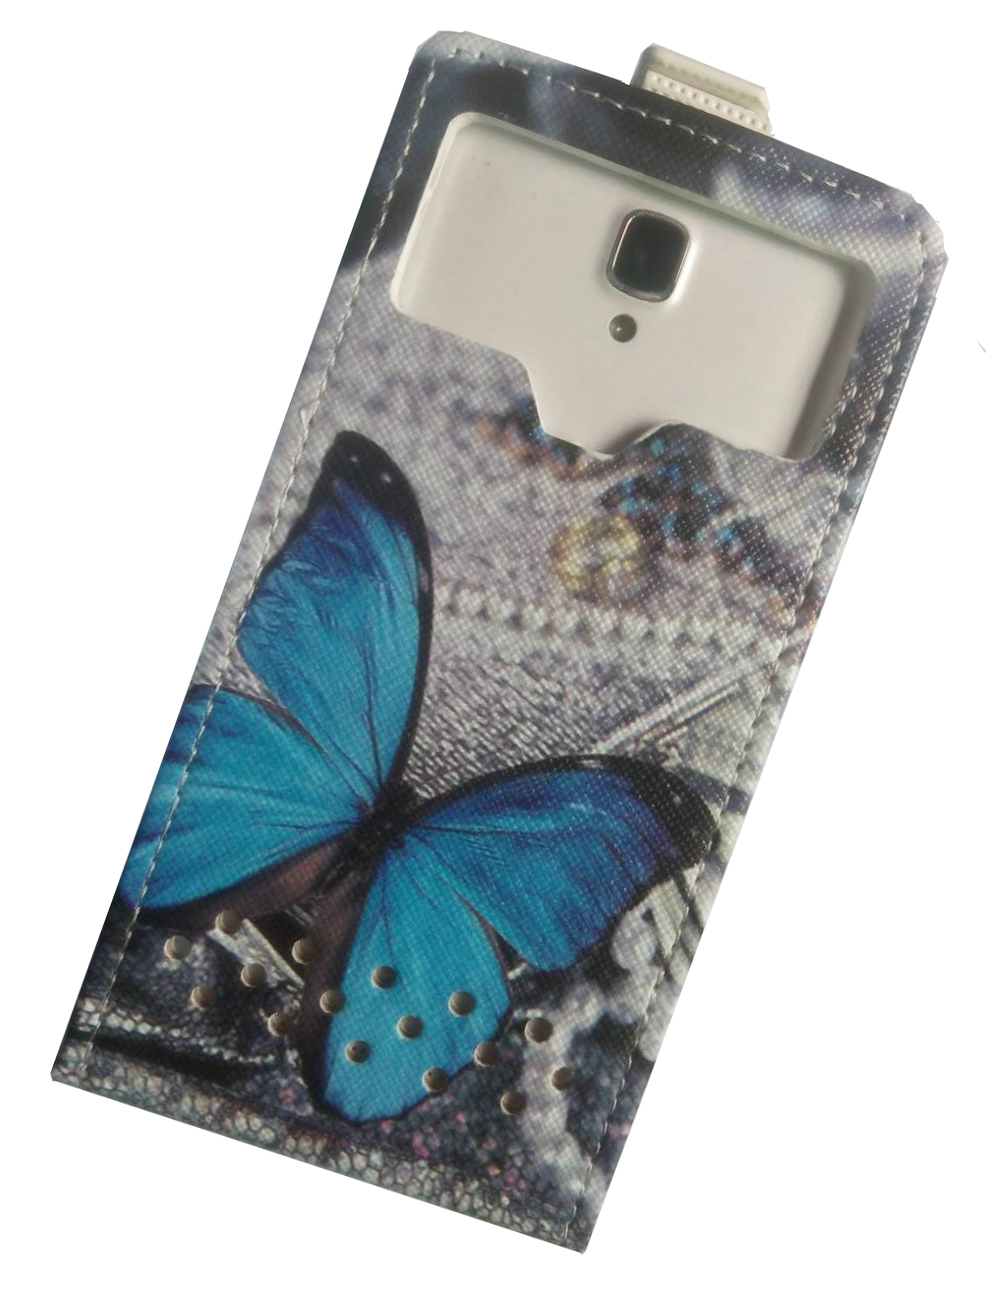 Flip Case For Blackberry Aurora Keyone Dtek70 Dtek60 Dtek50 Shell Smart Cover Leap Z3 Protective Phone Fashion In Pouch From Cellphones